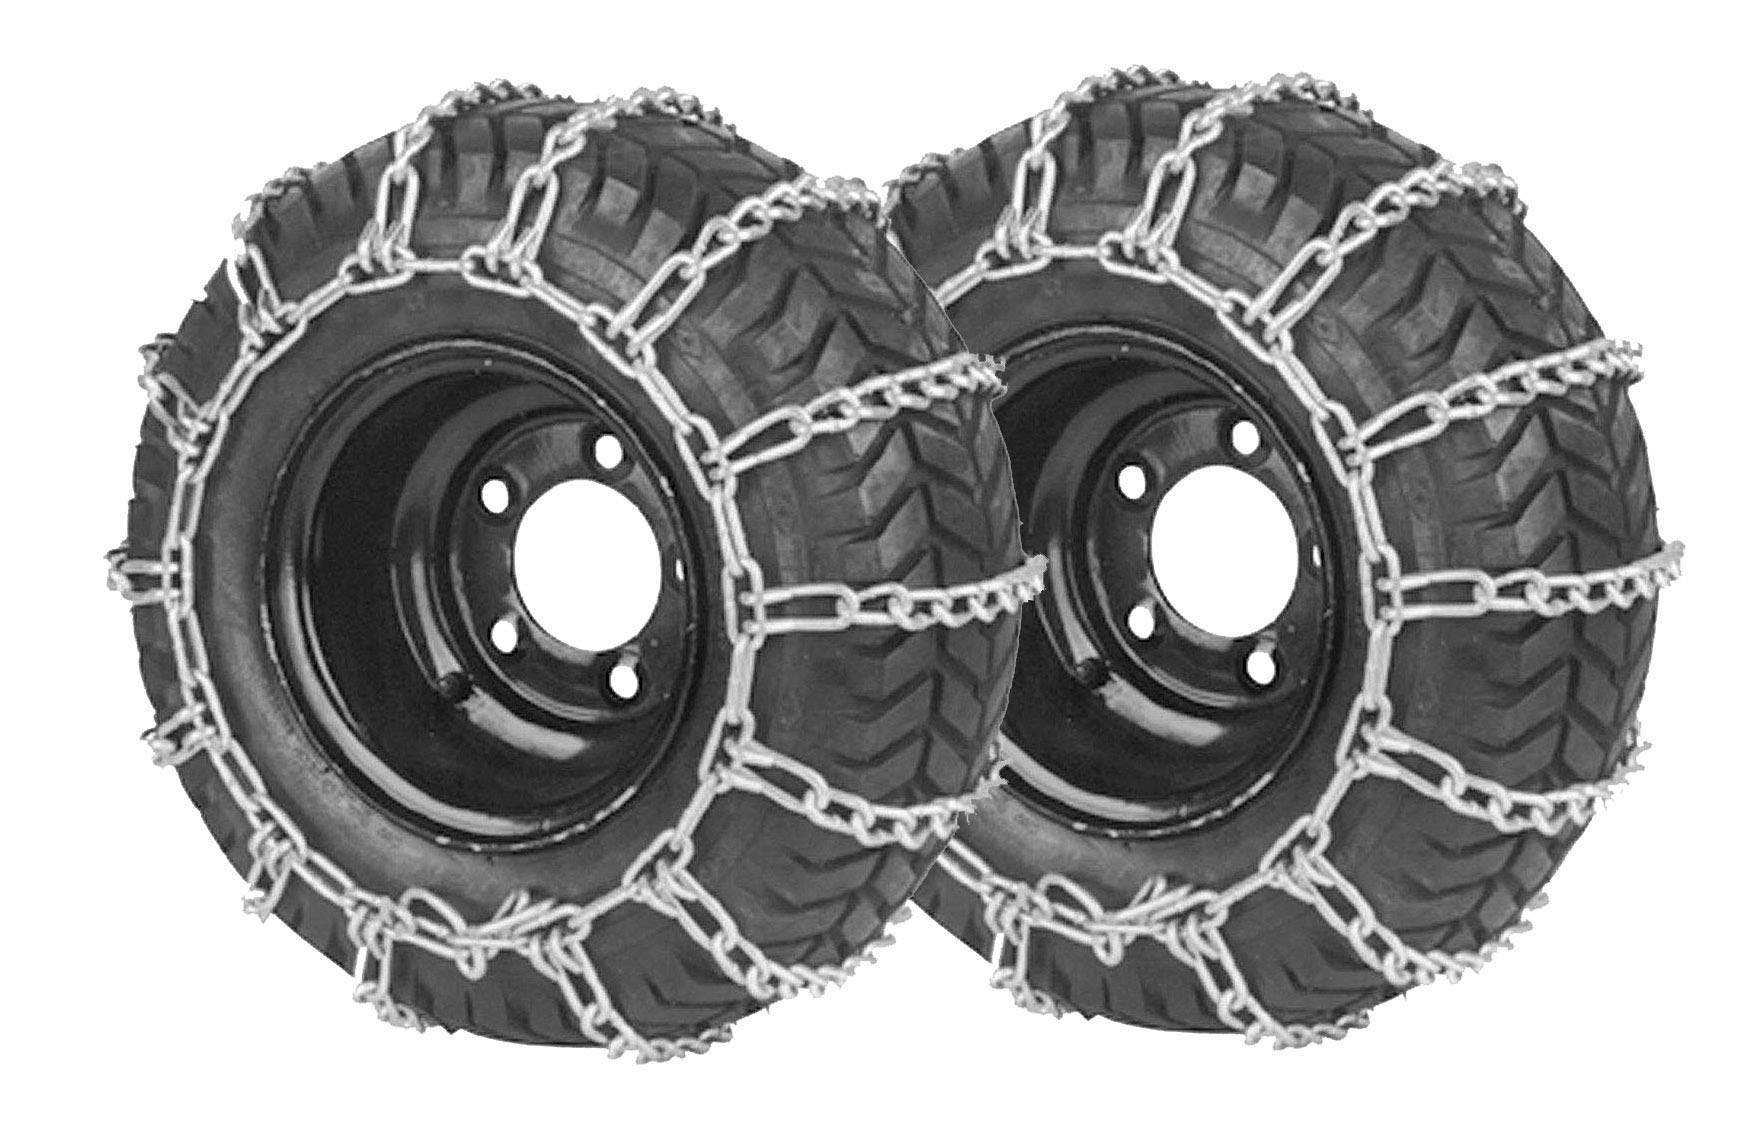 Stens 180-428 2 Link Tire Chain, Black by Stens